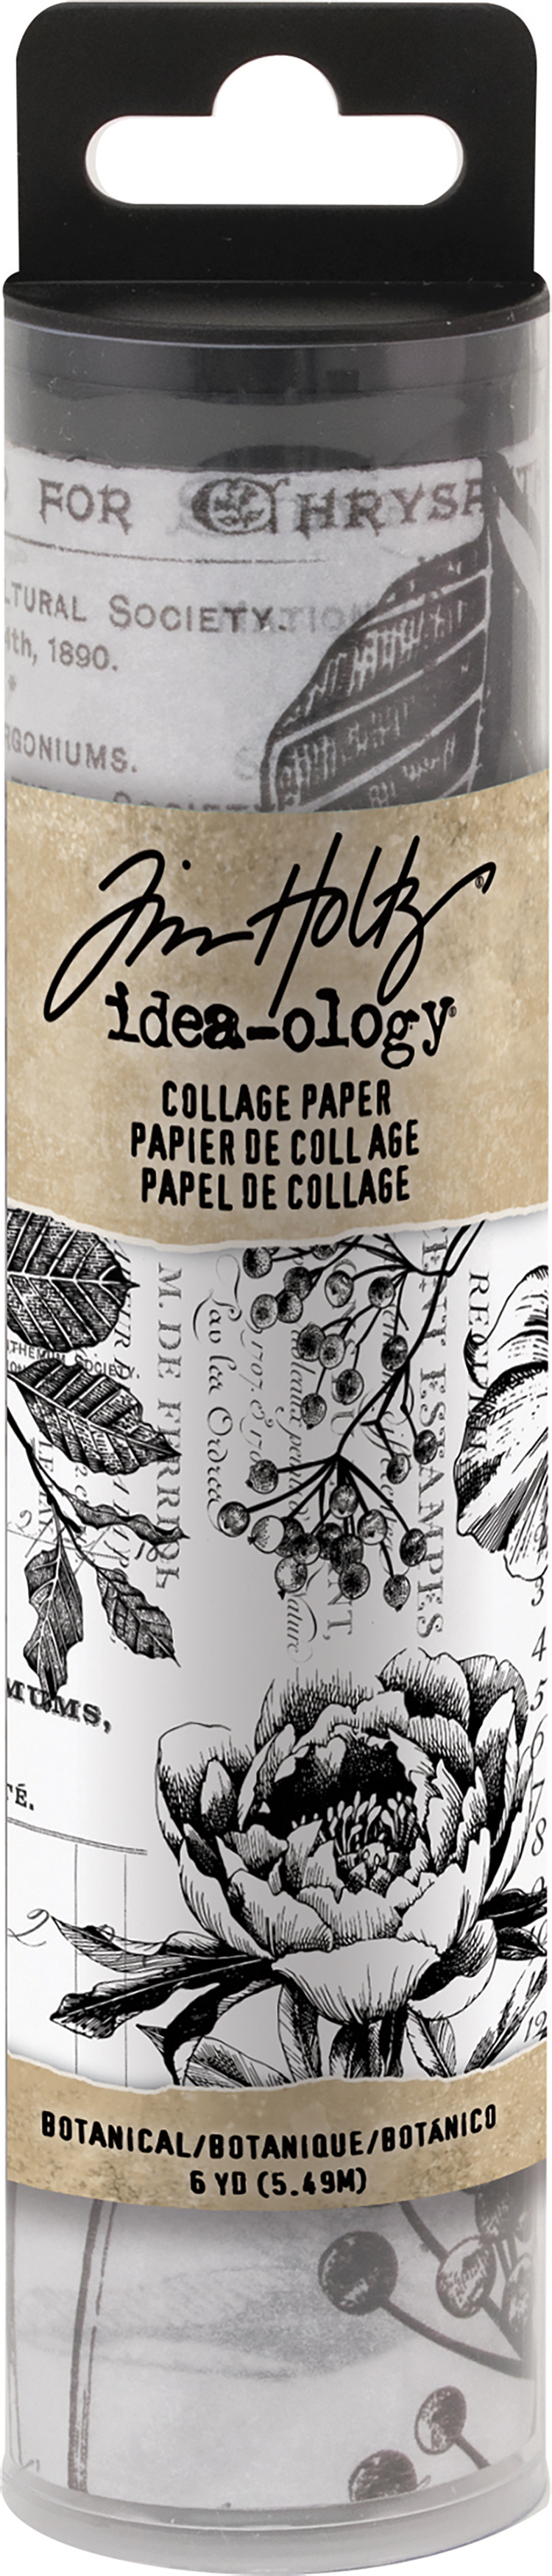 Idea-Ology Collage Paper 6X6yds-Botanical